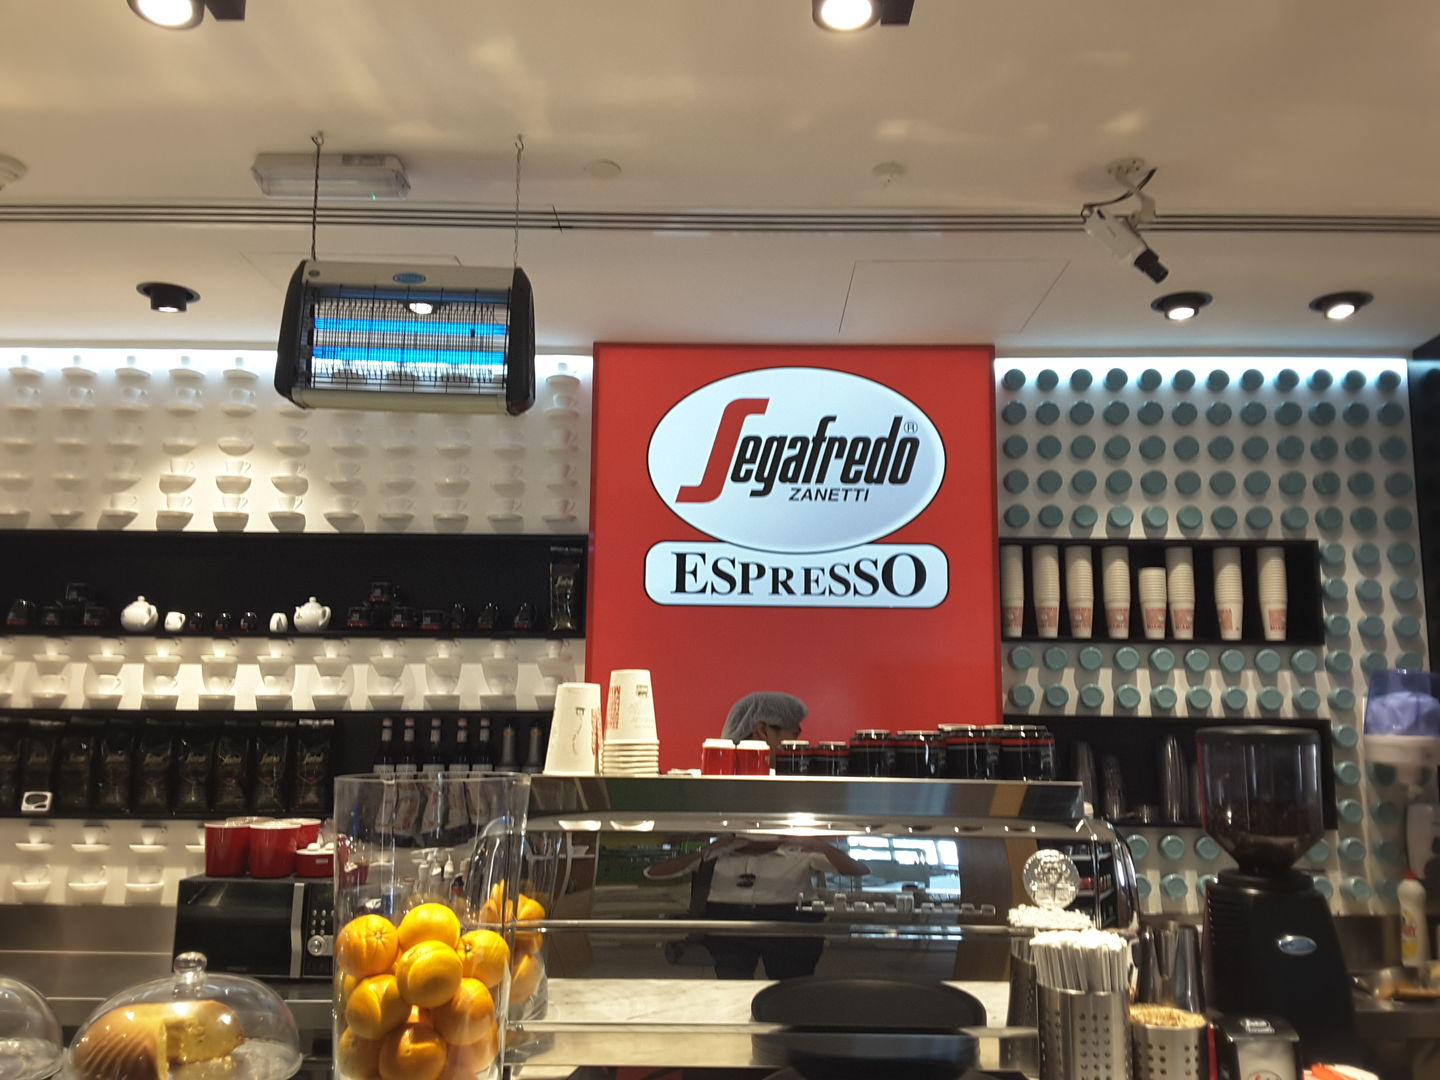 HiDubai-business-segafredo-zanetti-food-beverage-coffee-shops-jumeirah-1-dubai-2